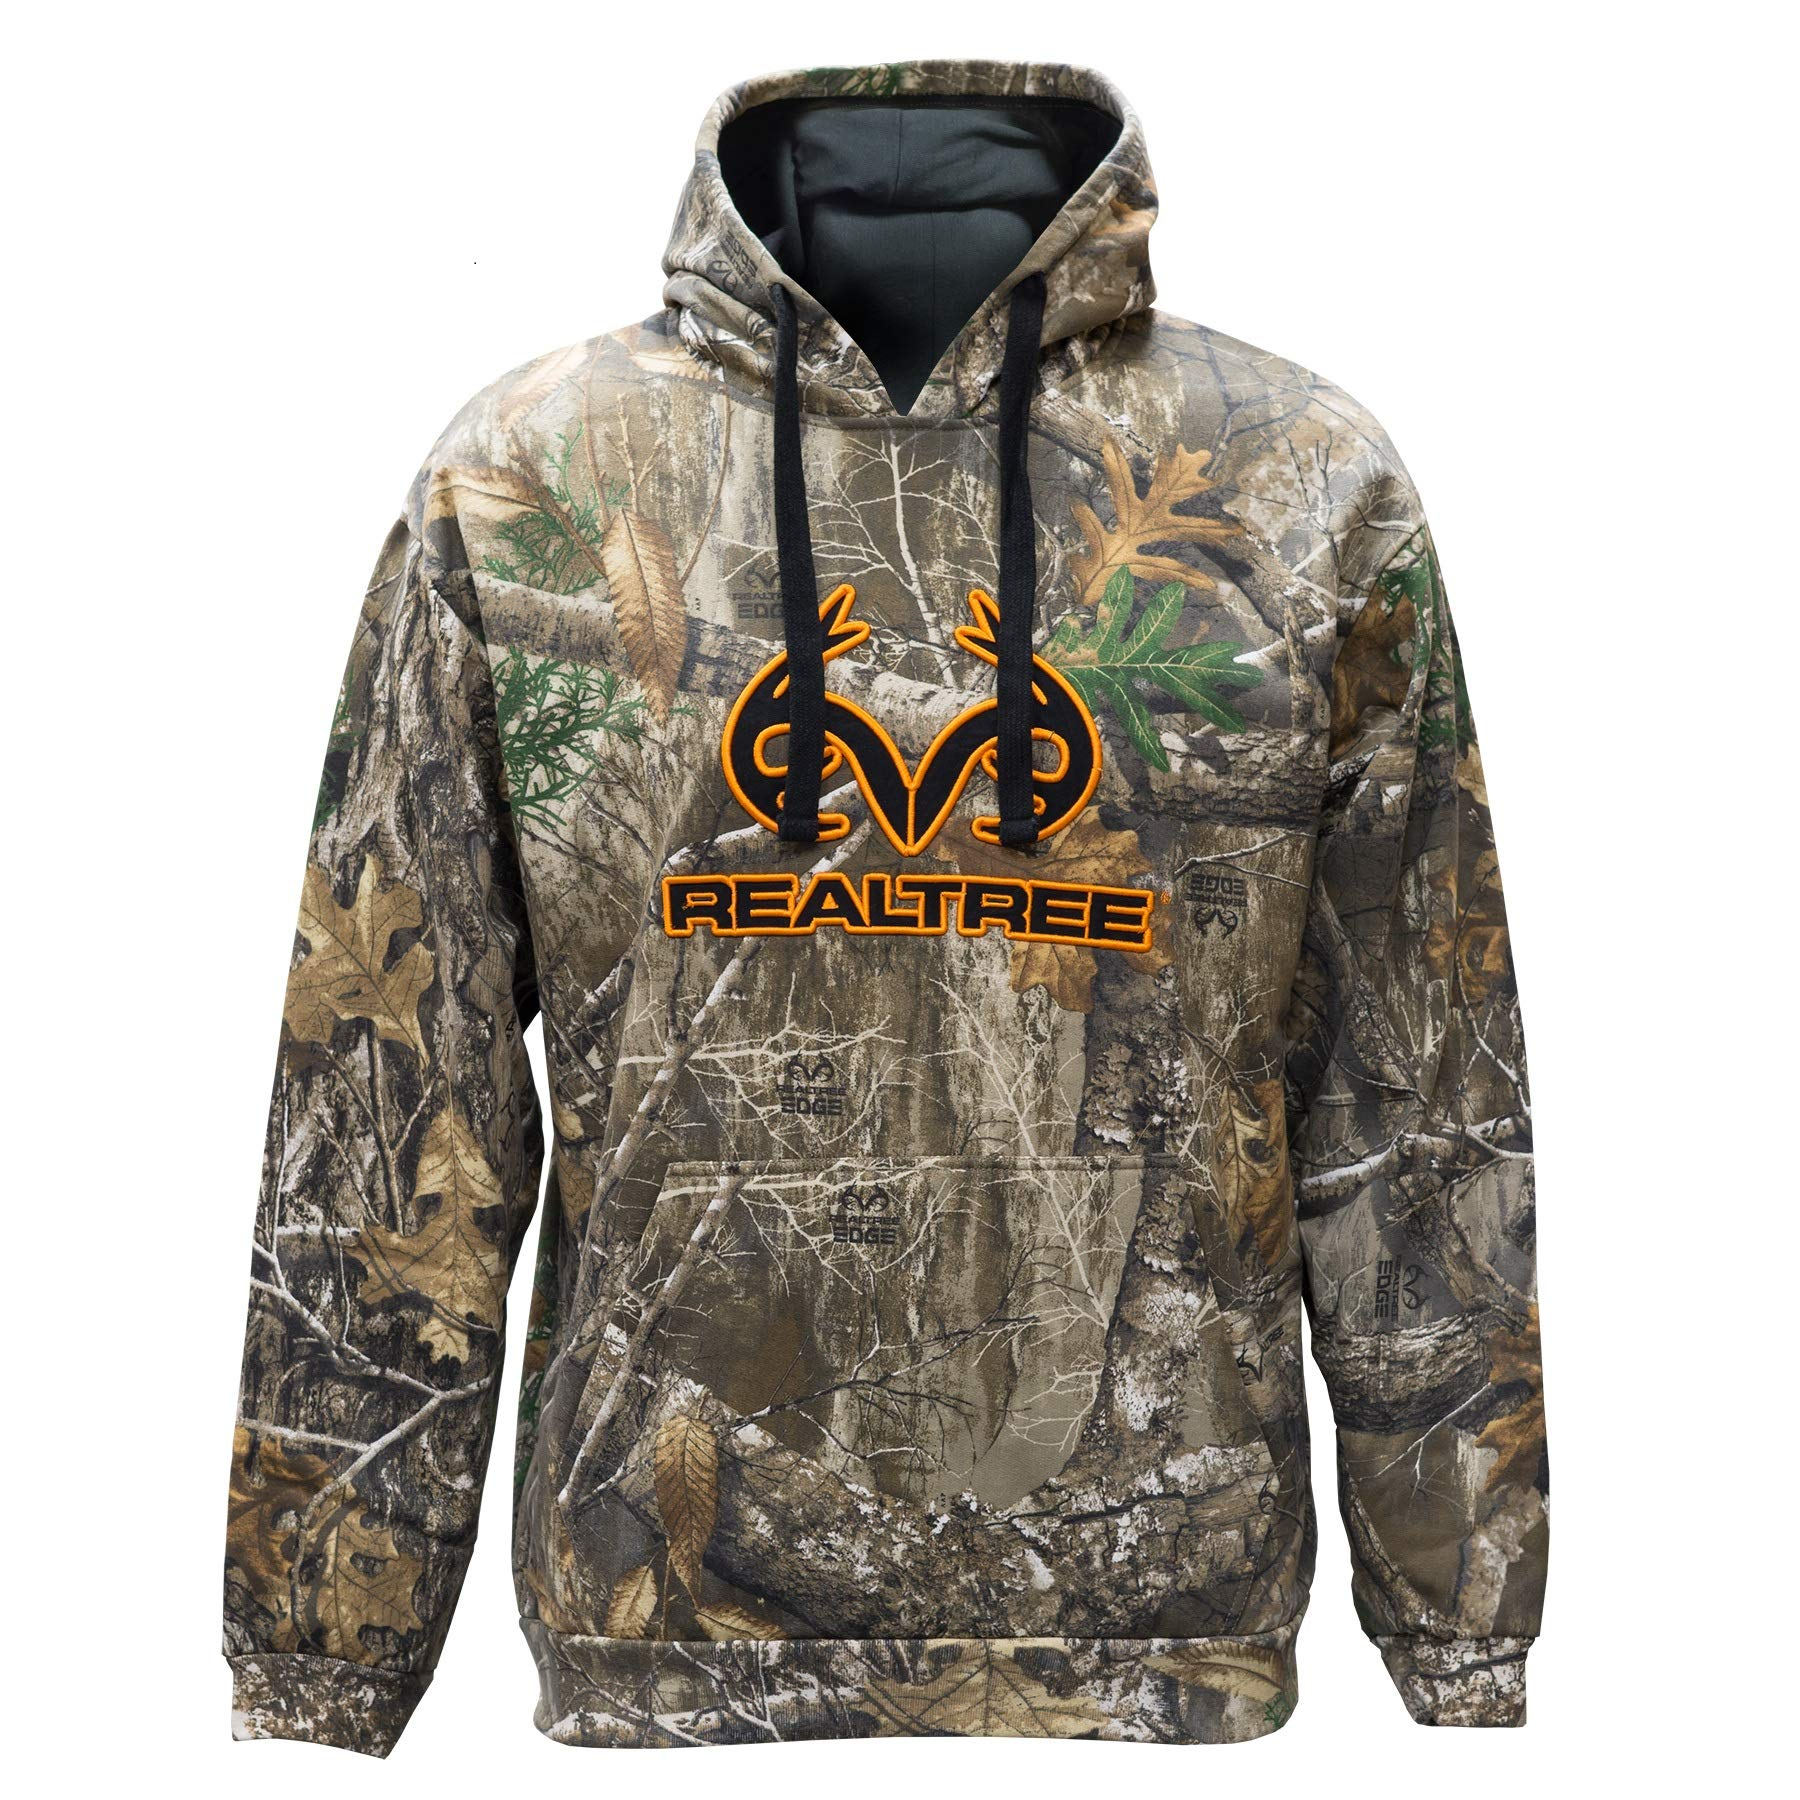 Staghorn Realtree Men's Camo Applique Hoodie, Edge, Large